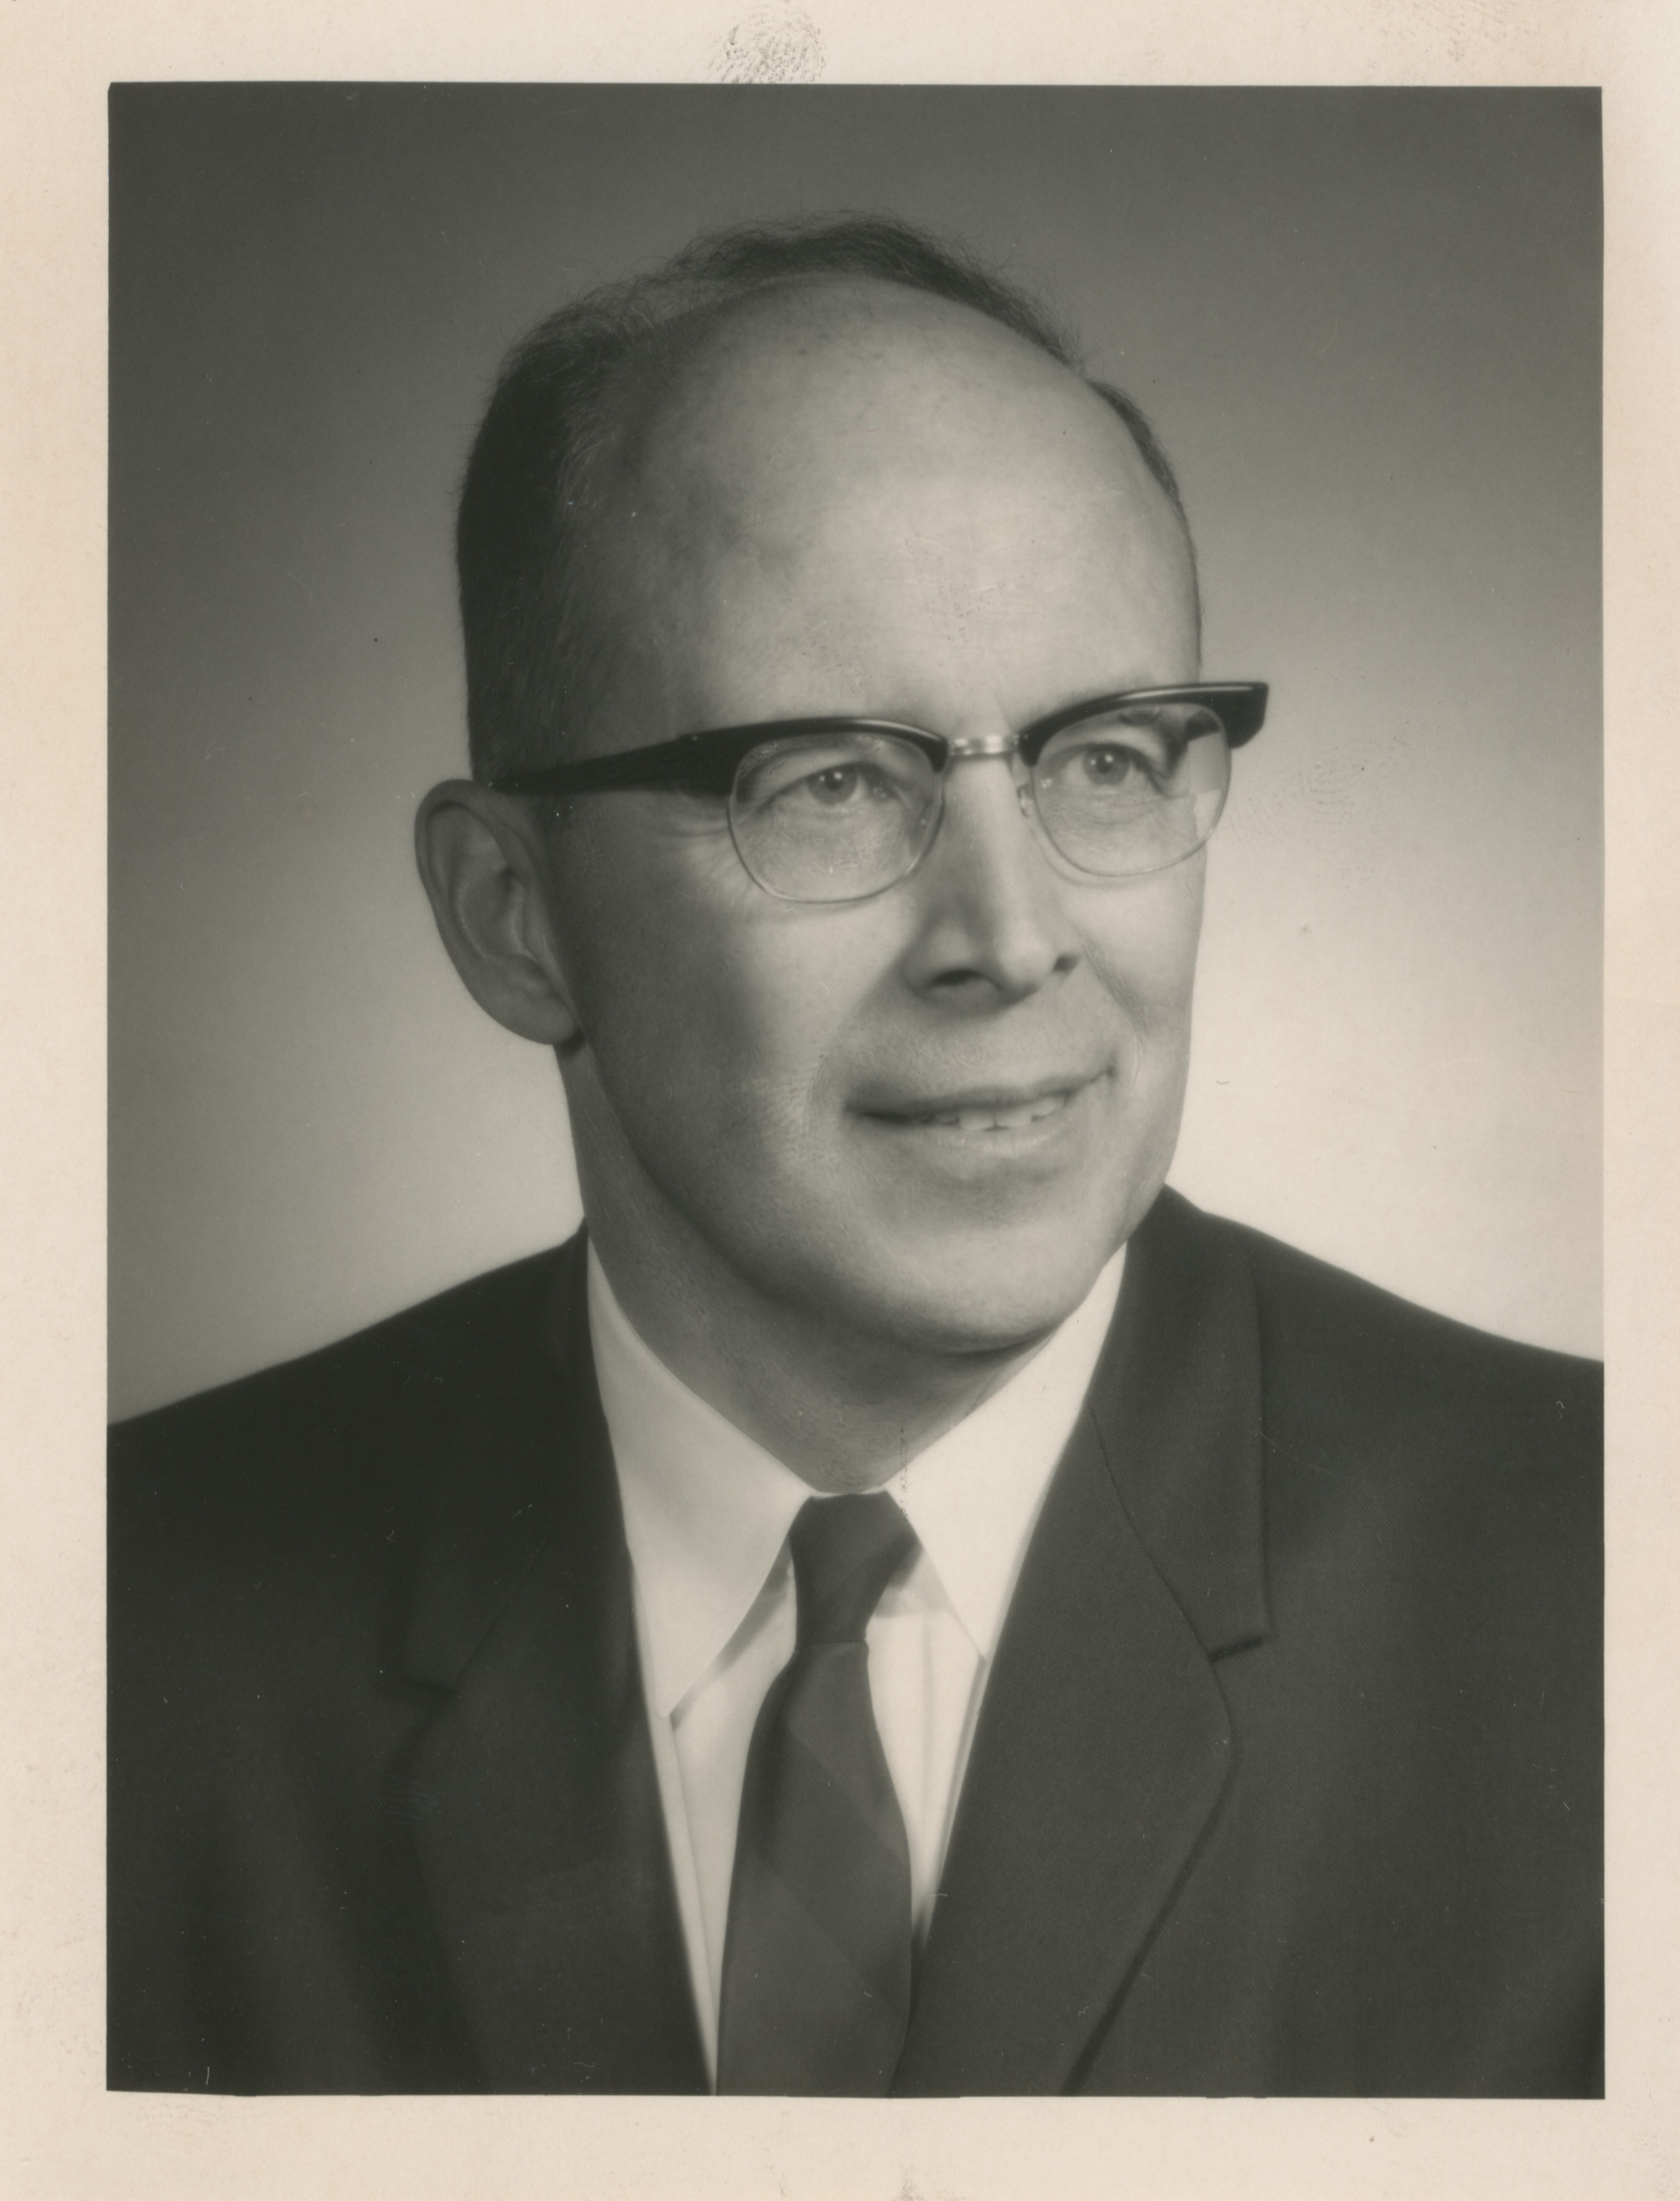 University of Michigan Professor Edwin H. Young, 1968 image